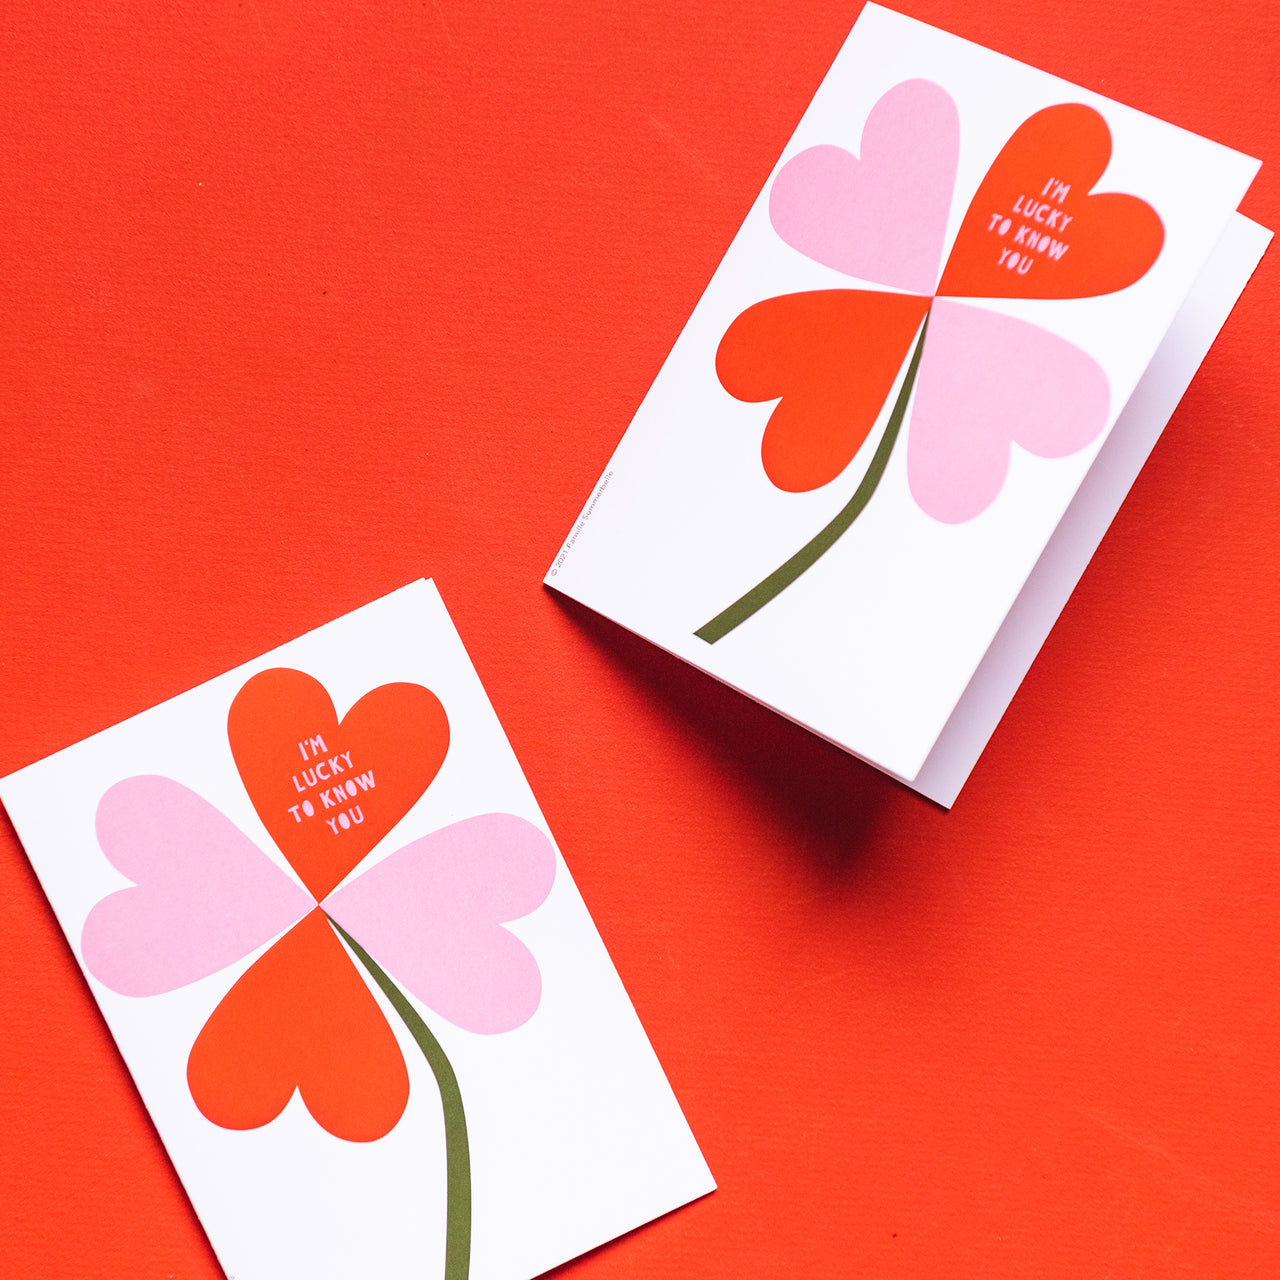 I'm Lucky to Know You Valentine Card by Julie Marabelle of Famille Summerbelle, PDF Printable